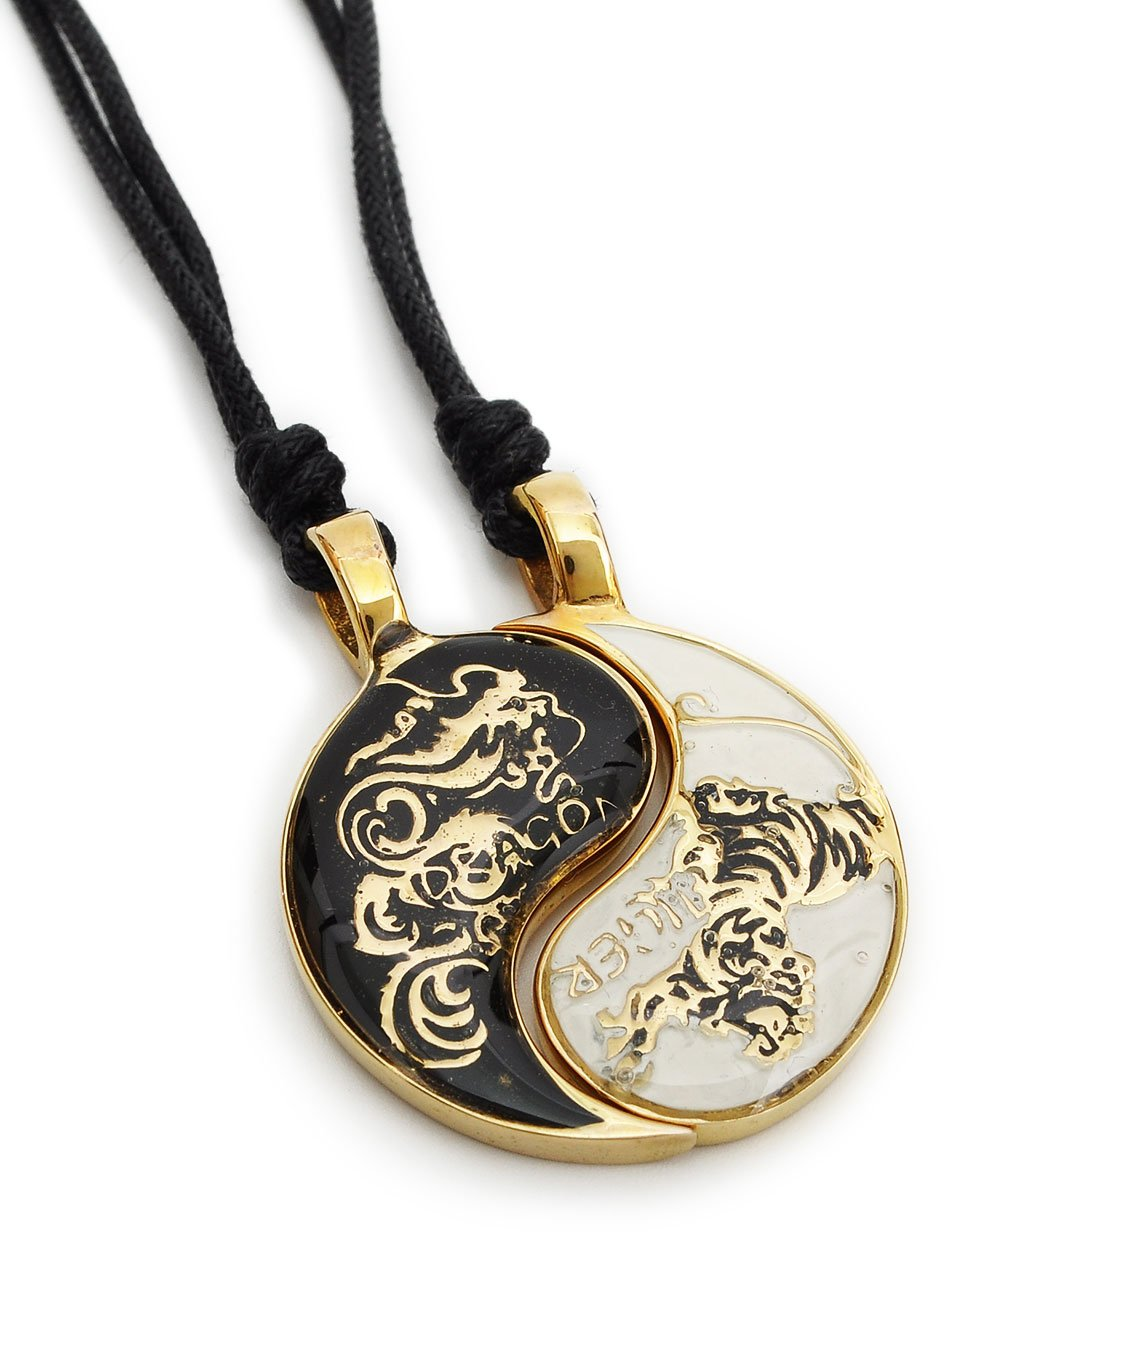 Vietguild Dragon Tiger Yin Yang Seperated (2 Necklaces) Handmade Brass Necklace Pendant Jewelry by Vietguild (Image #1)